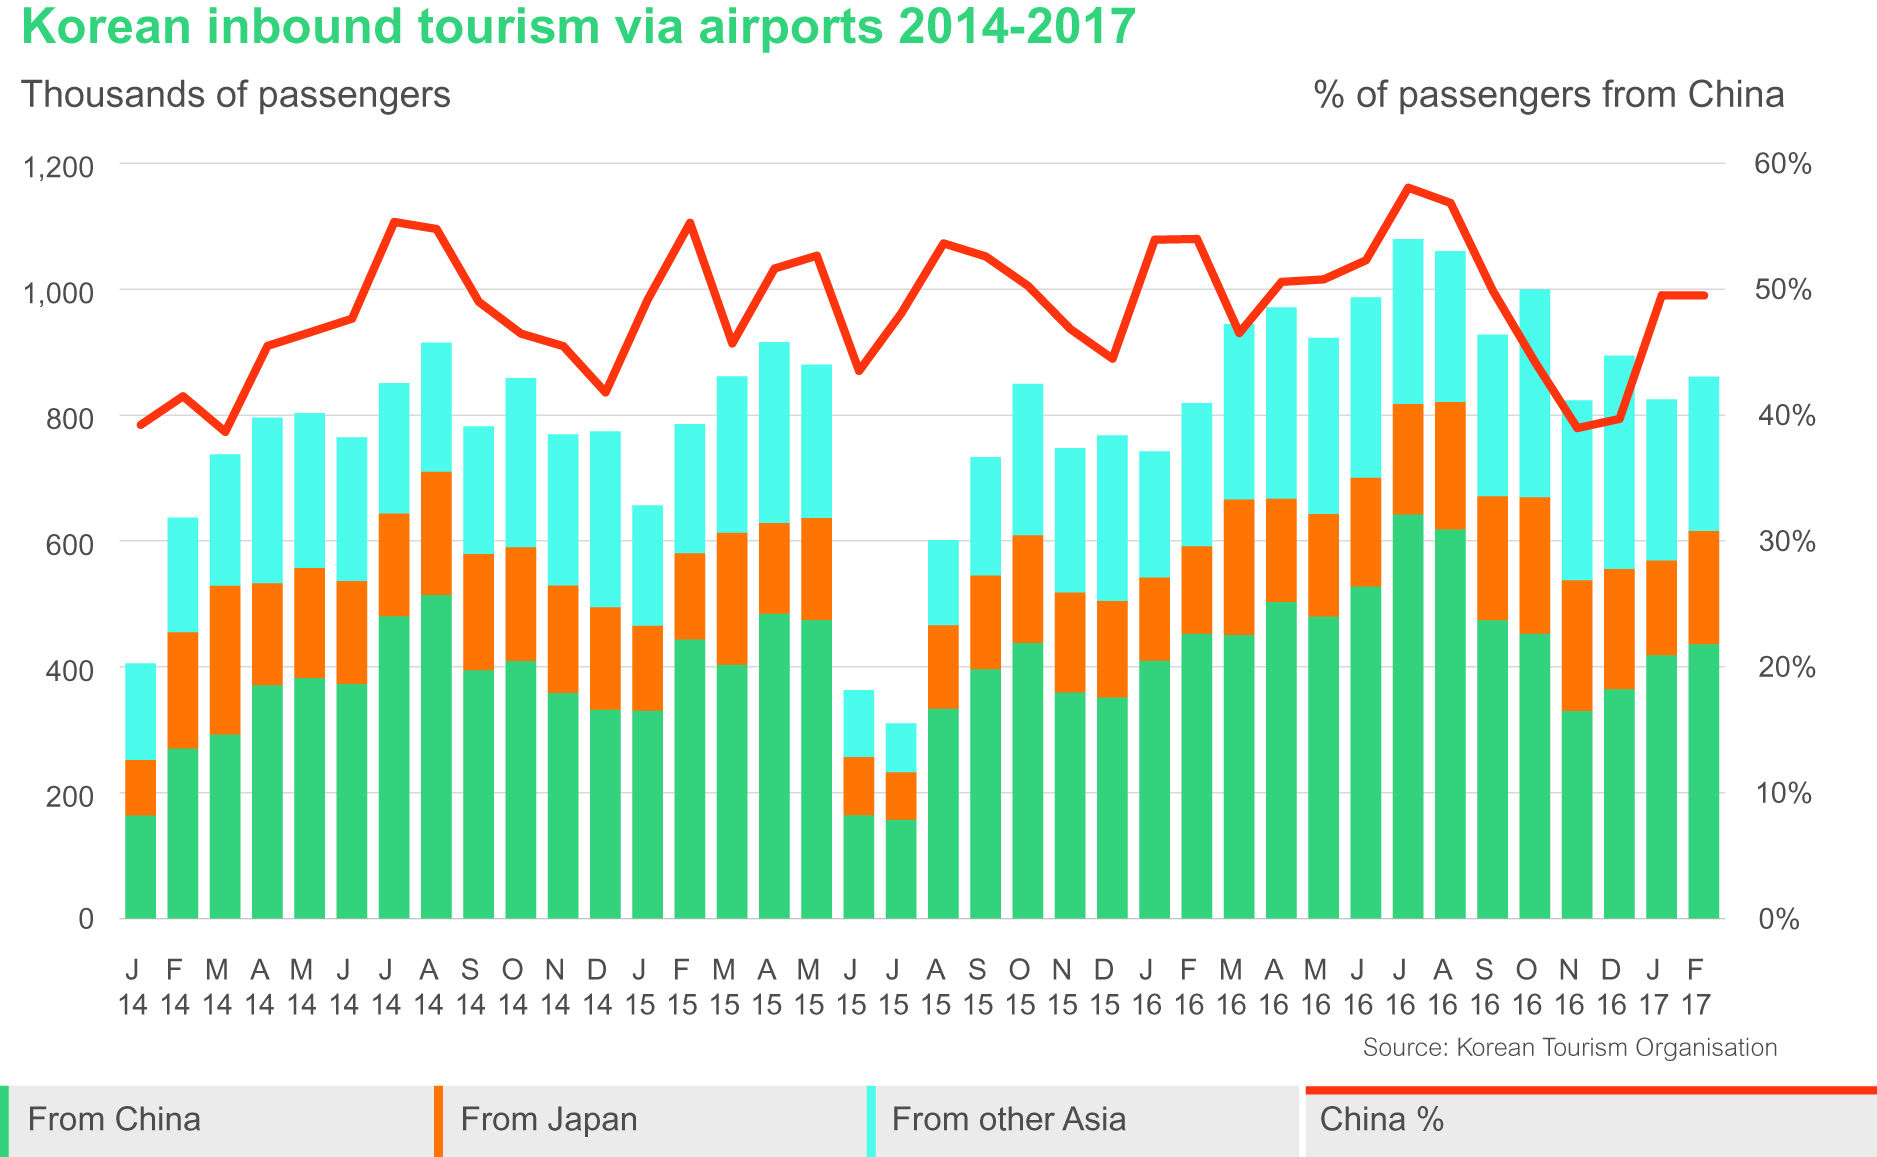 Korean inbound tourism via airports 2014-2017